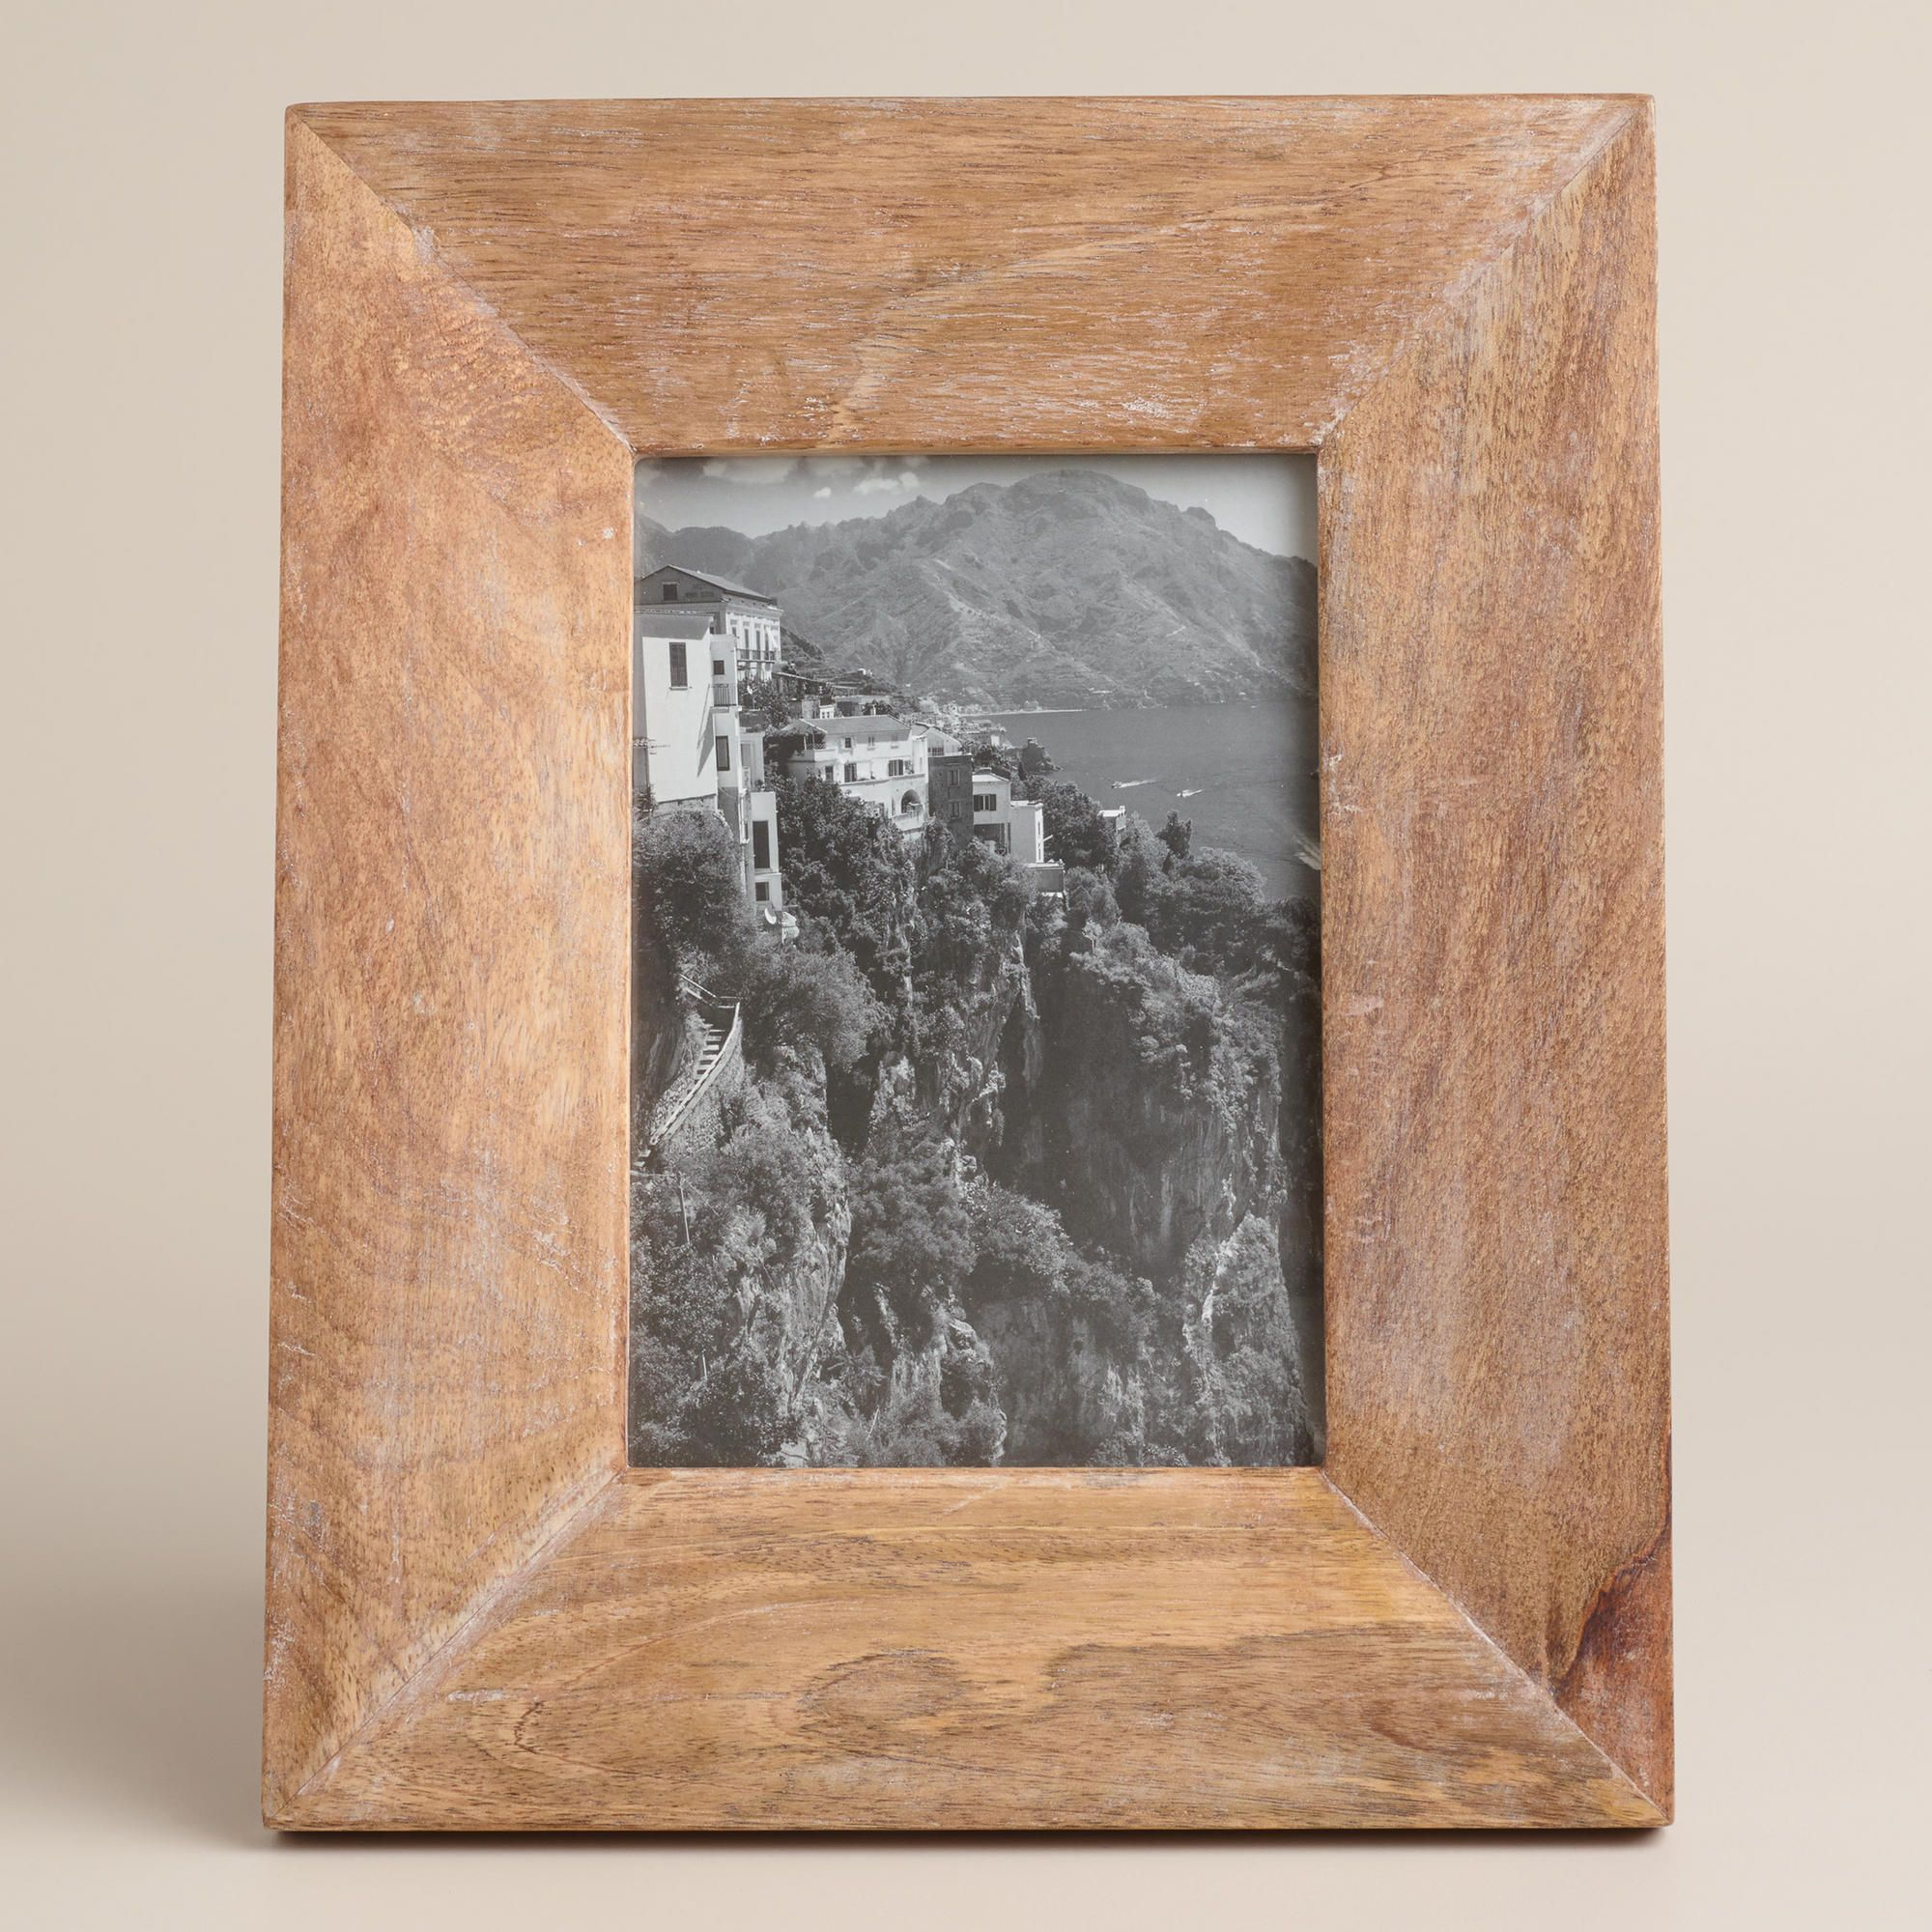 Natural Evan Wood Frame World Market Decor Items